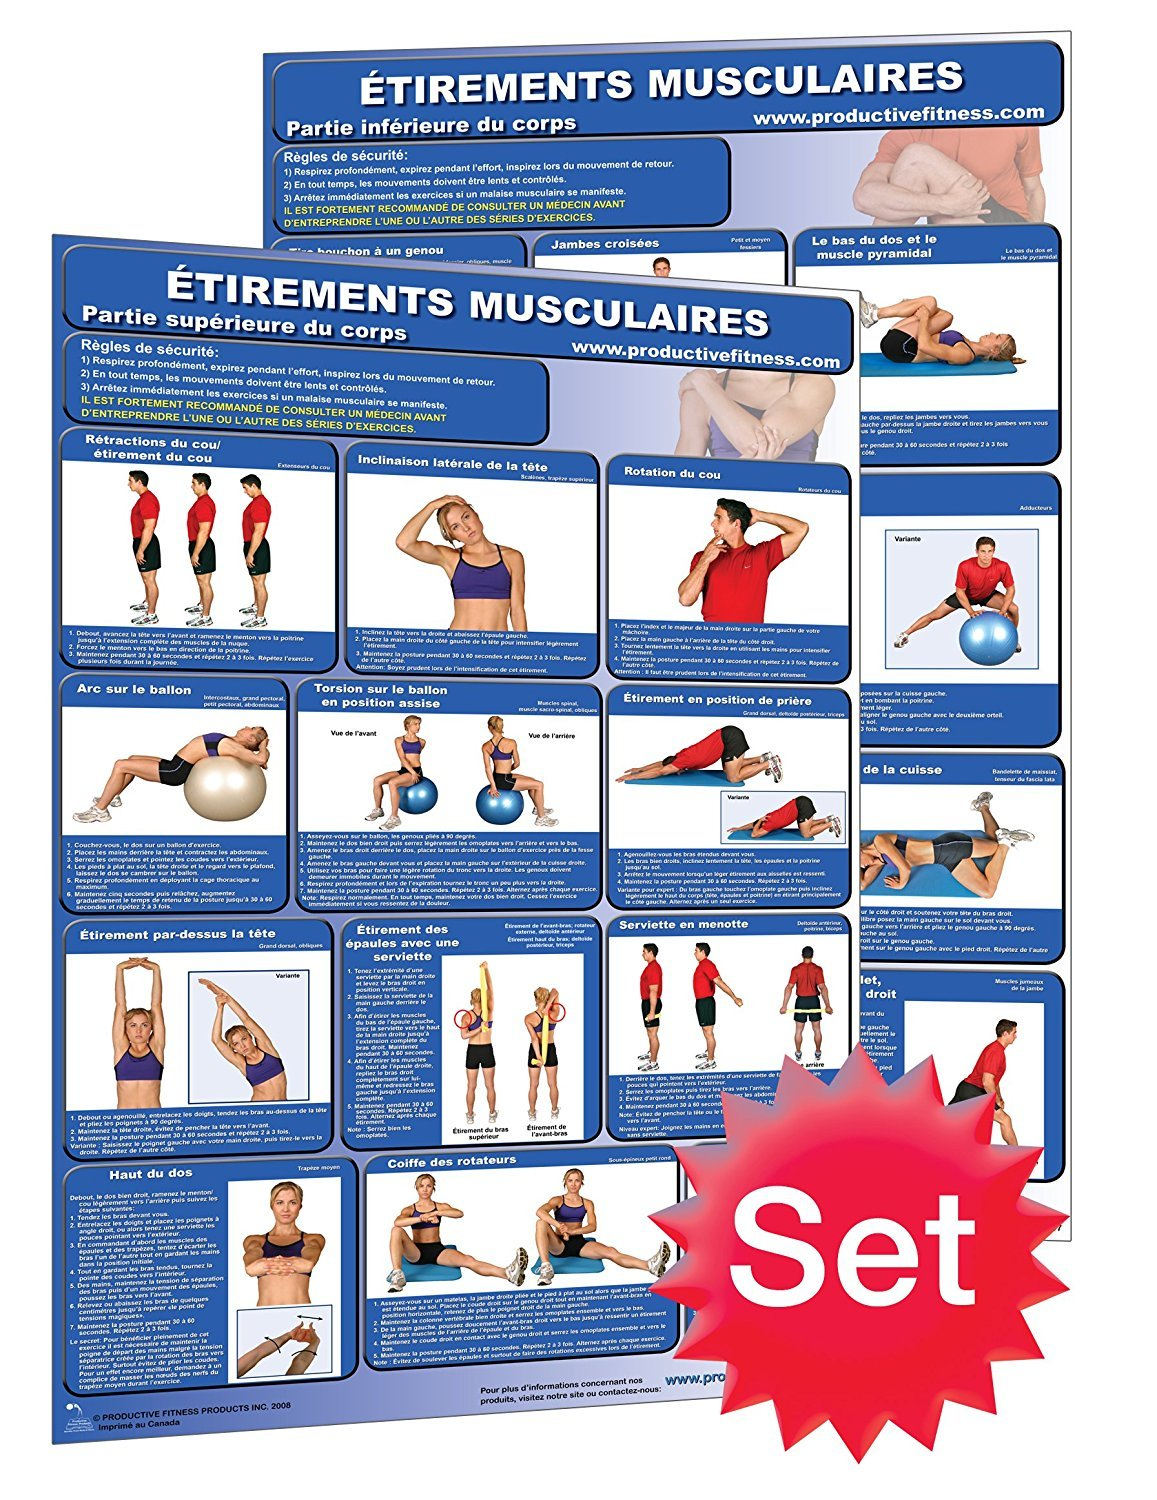 Amazon.com : Étirements Musculaires - Stretching Poster/Chart Set ...